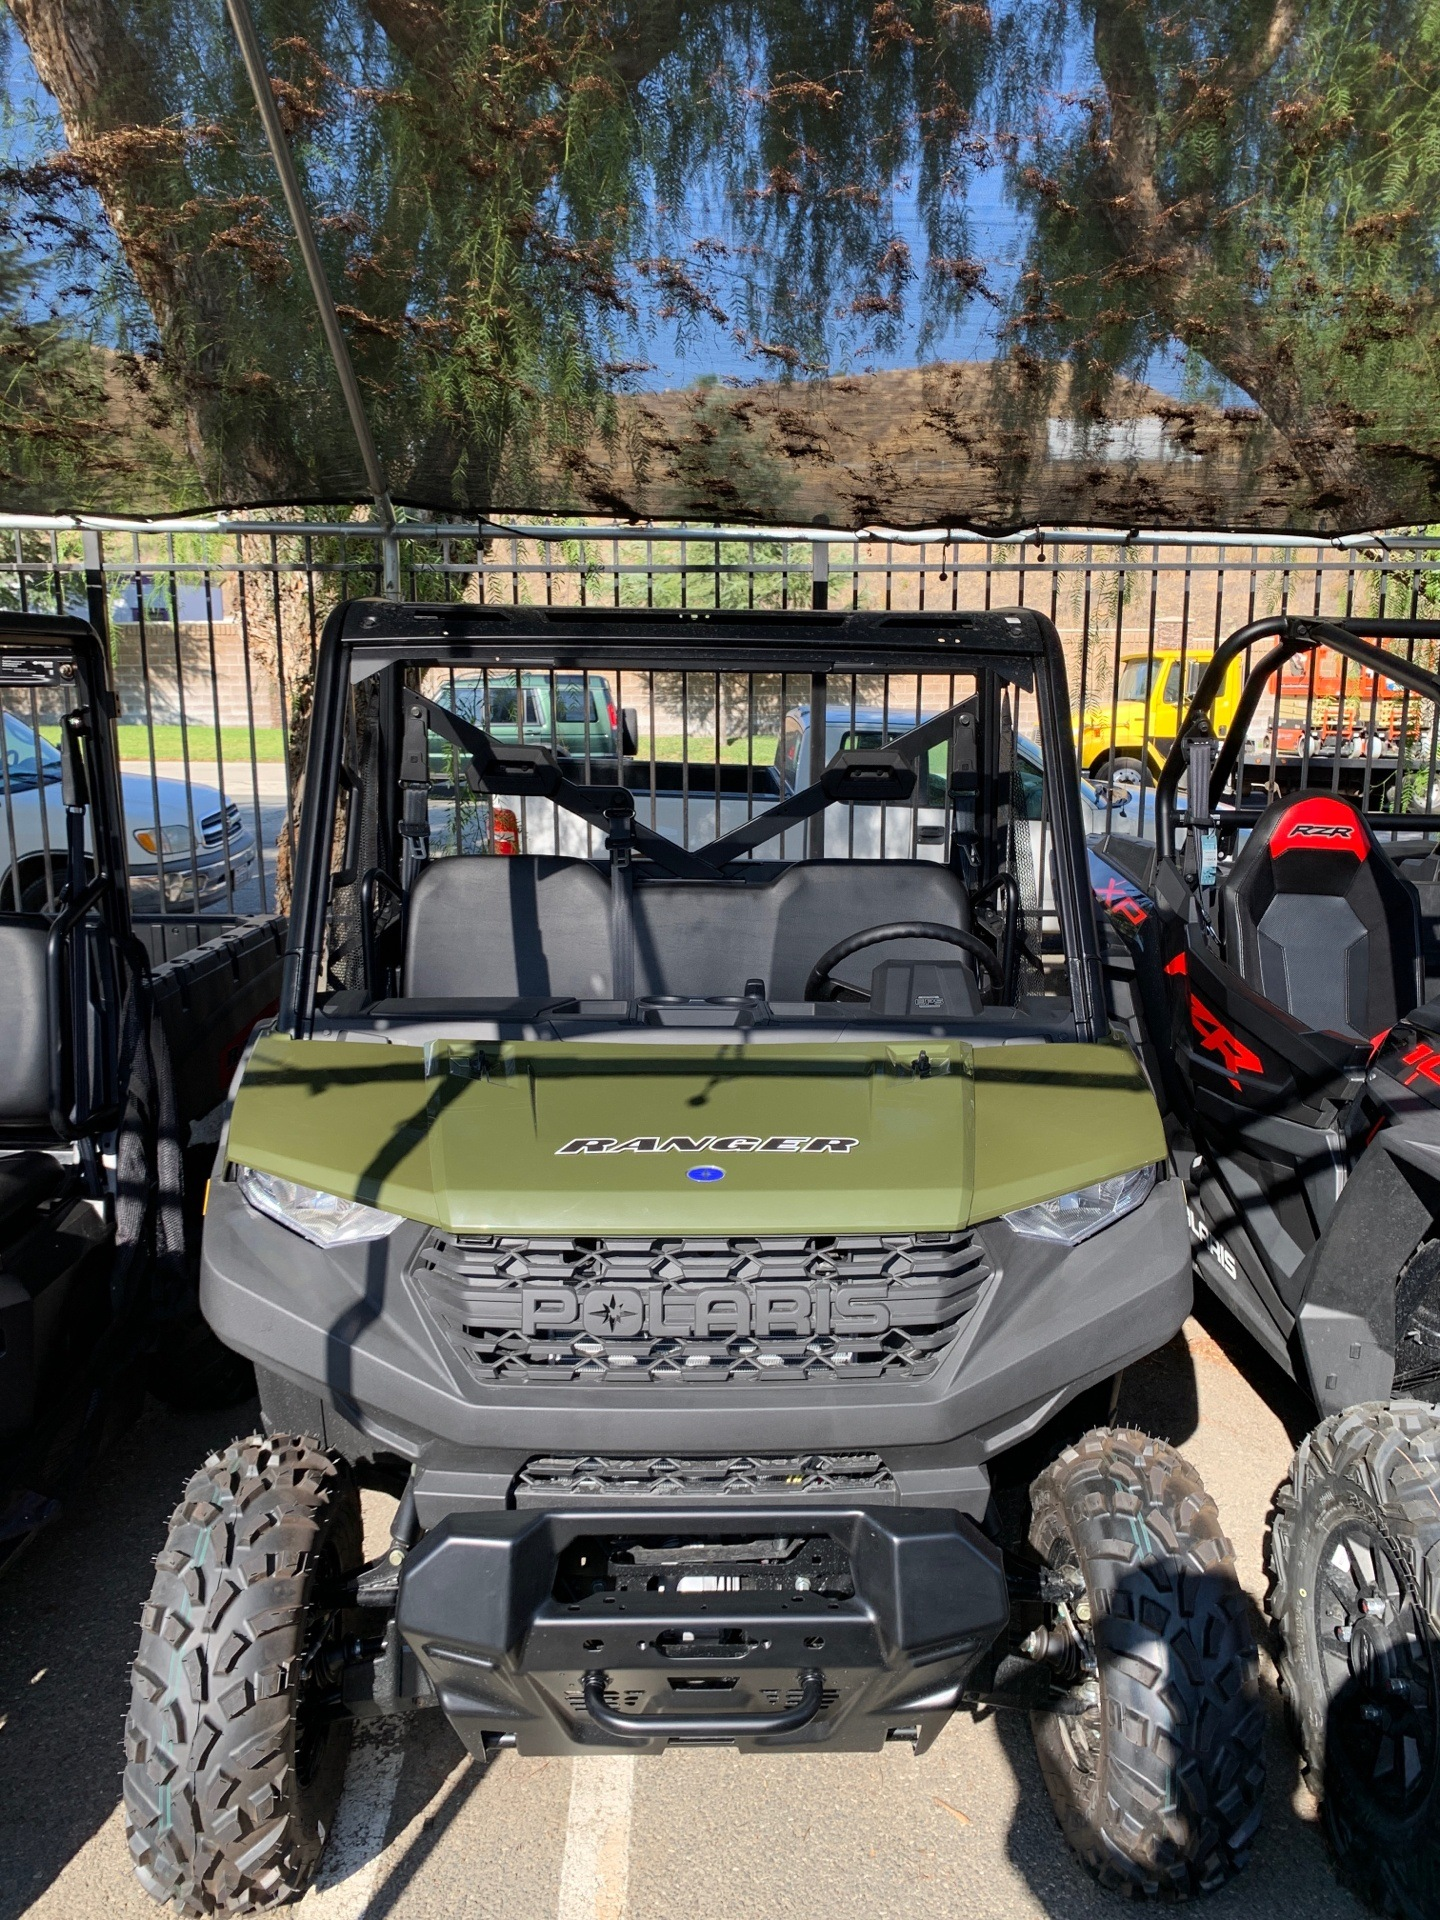 2020 Polaris Ranger 1000 EPS in Castaic, California - Photo 1